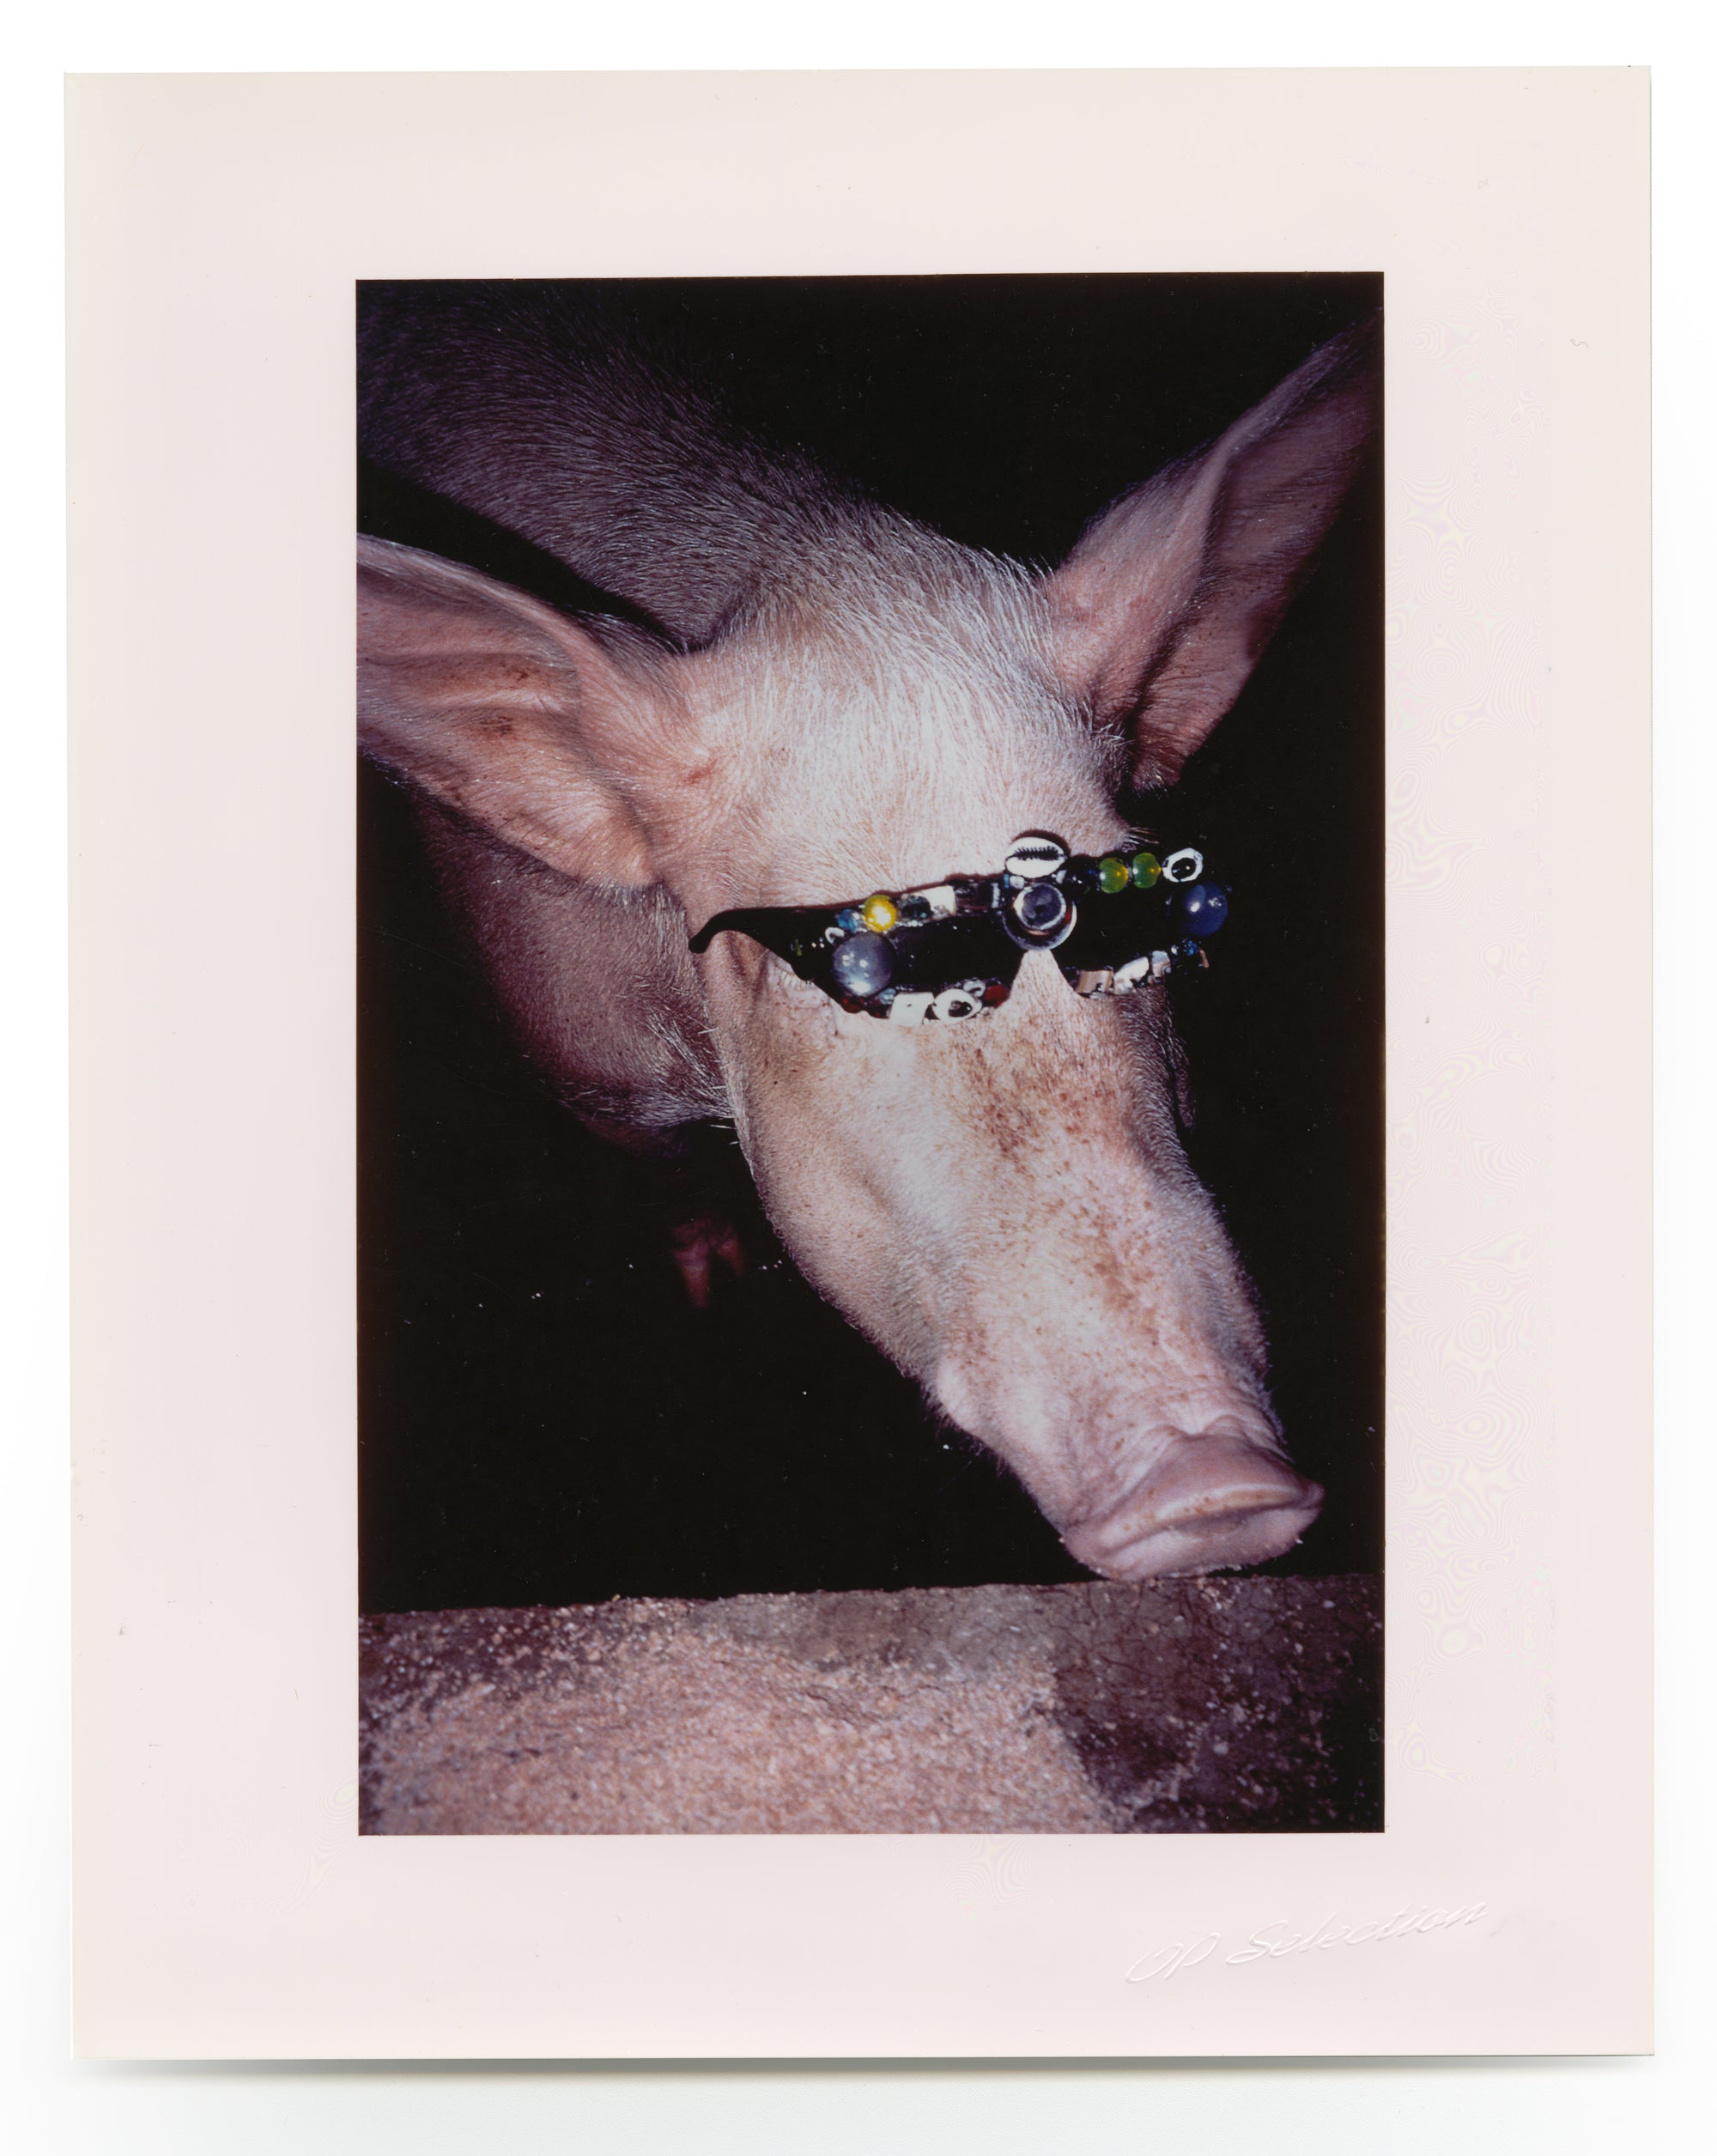 Froggy Sunglasses Project (Pig)